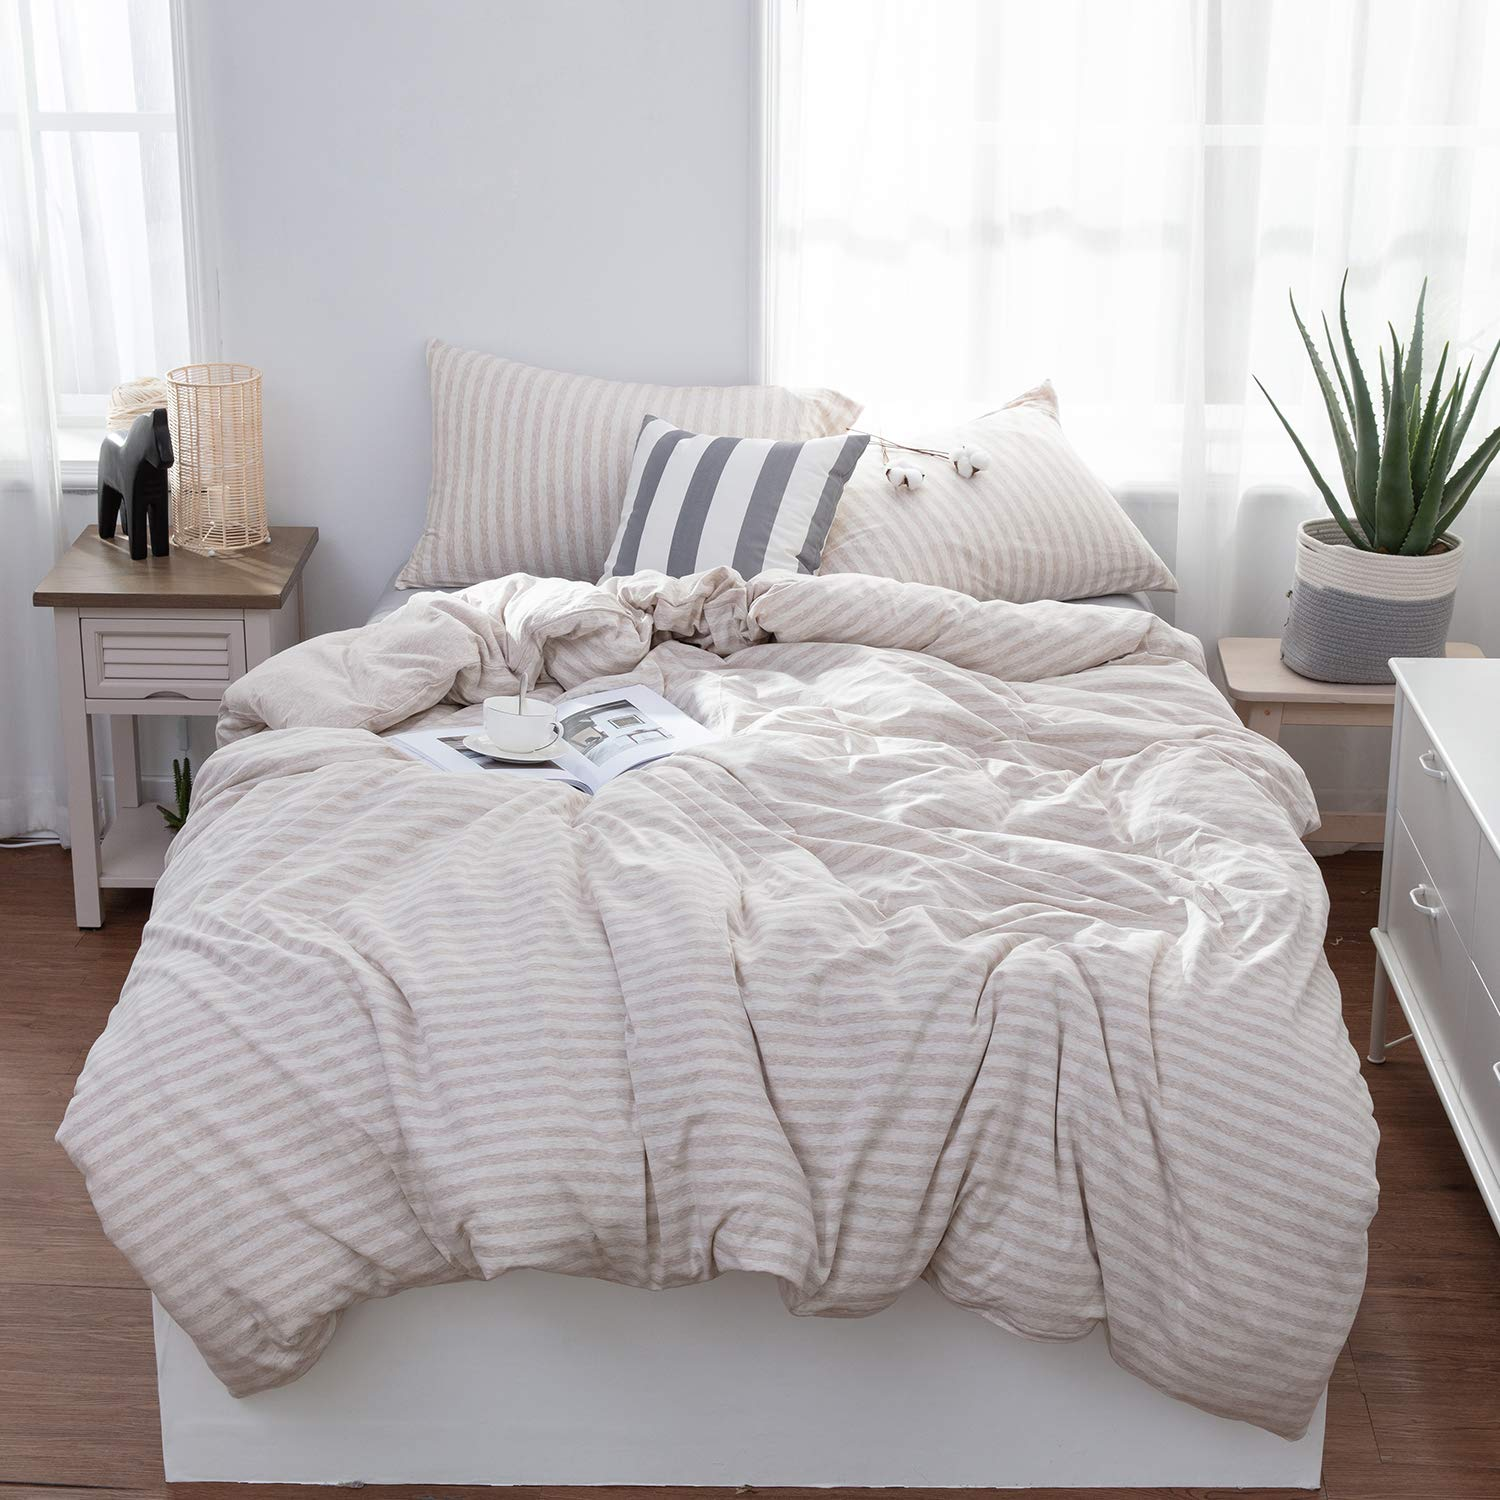 LIFETOWN Jersey Knit Cotton Striped Duvet Cover Queen Full Size Reversible Duvet Cover Set 3 Pieces, Extremely Soft (Full/Queen, Light Coffee)